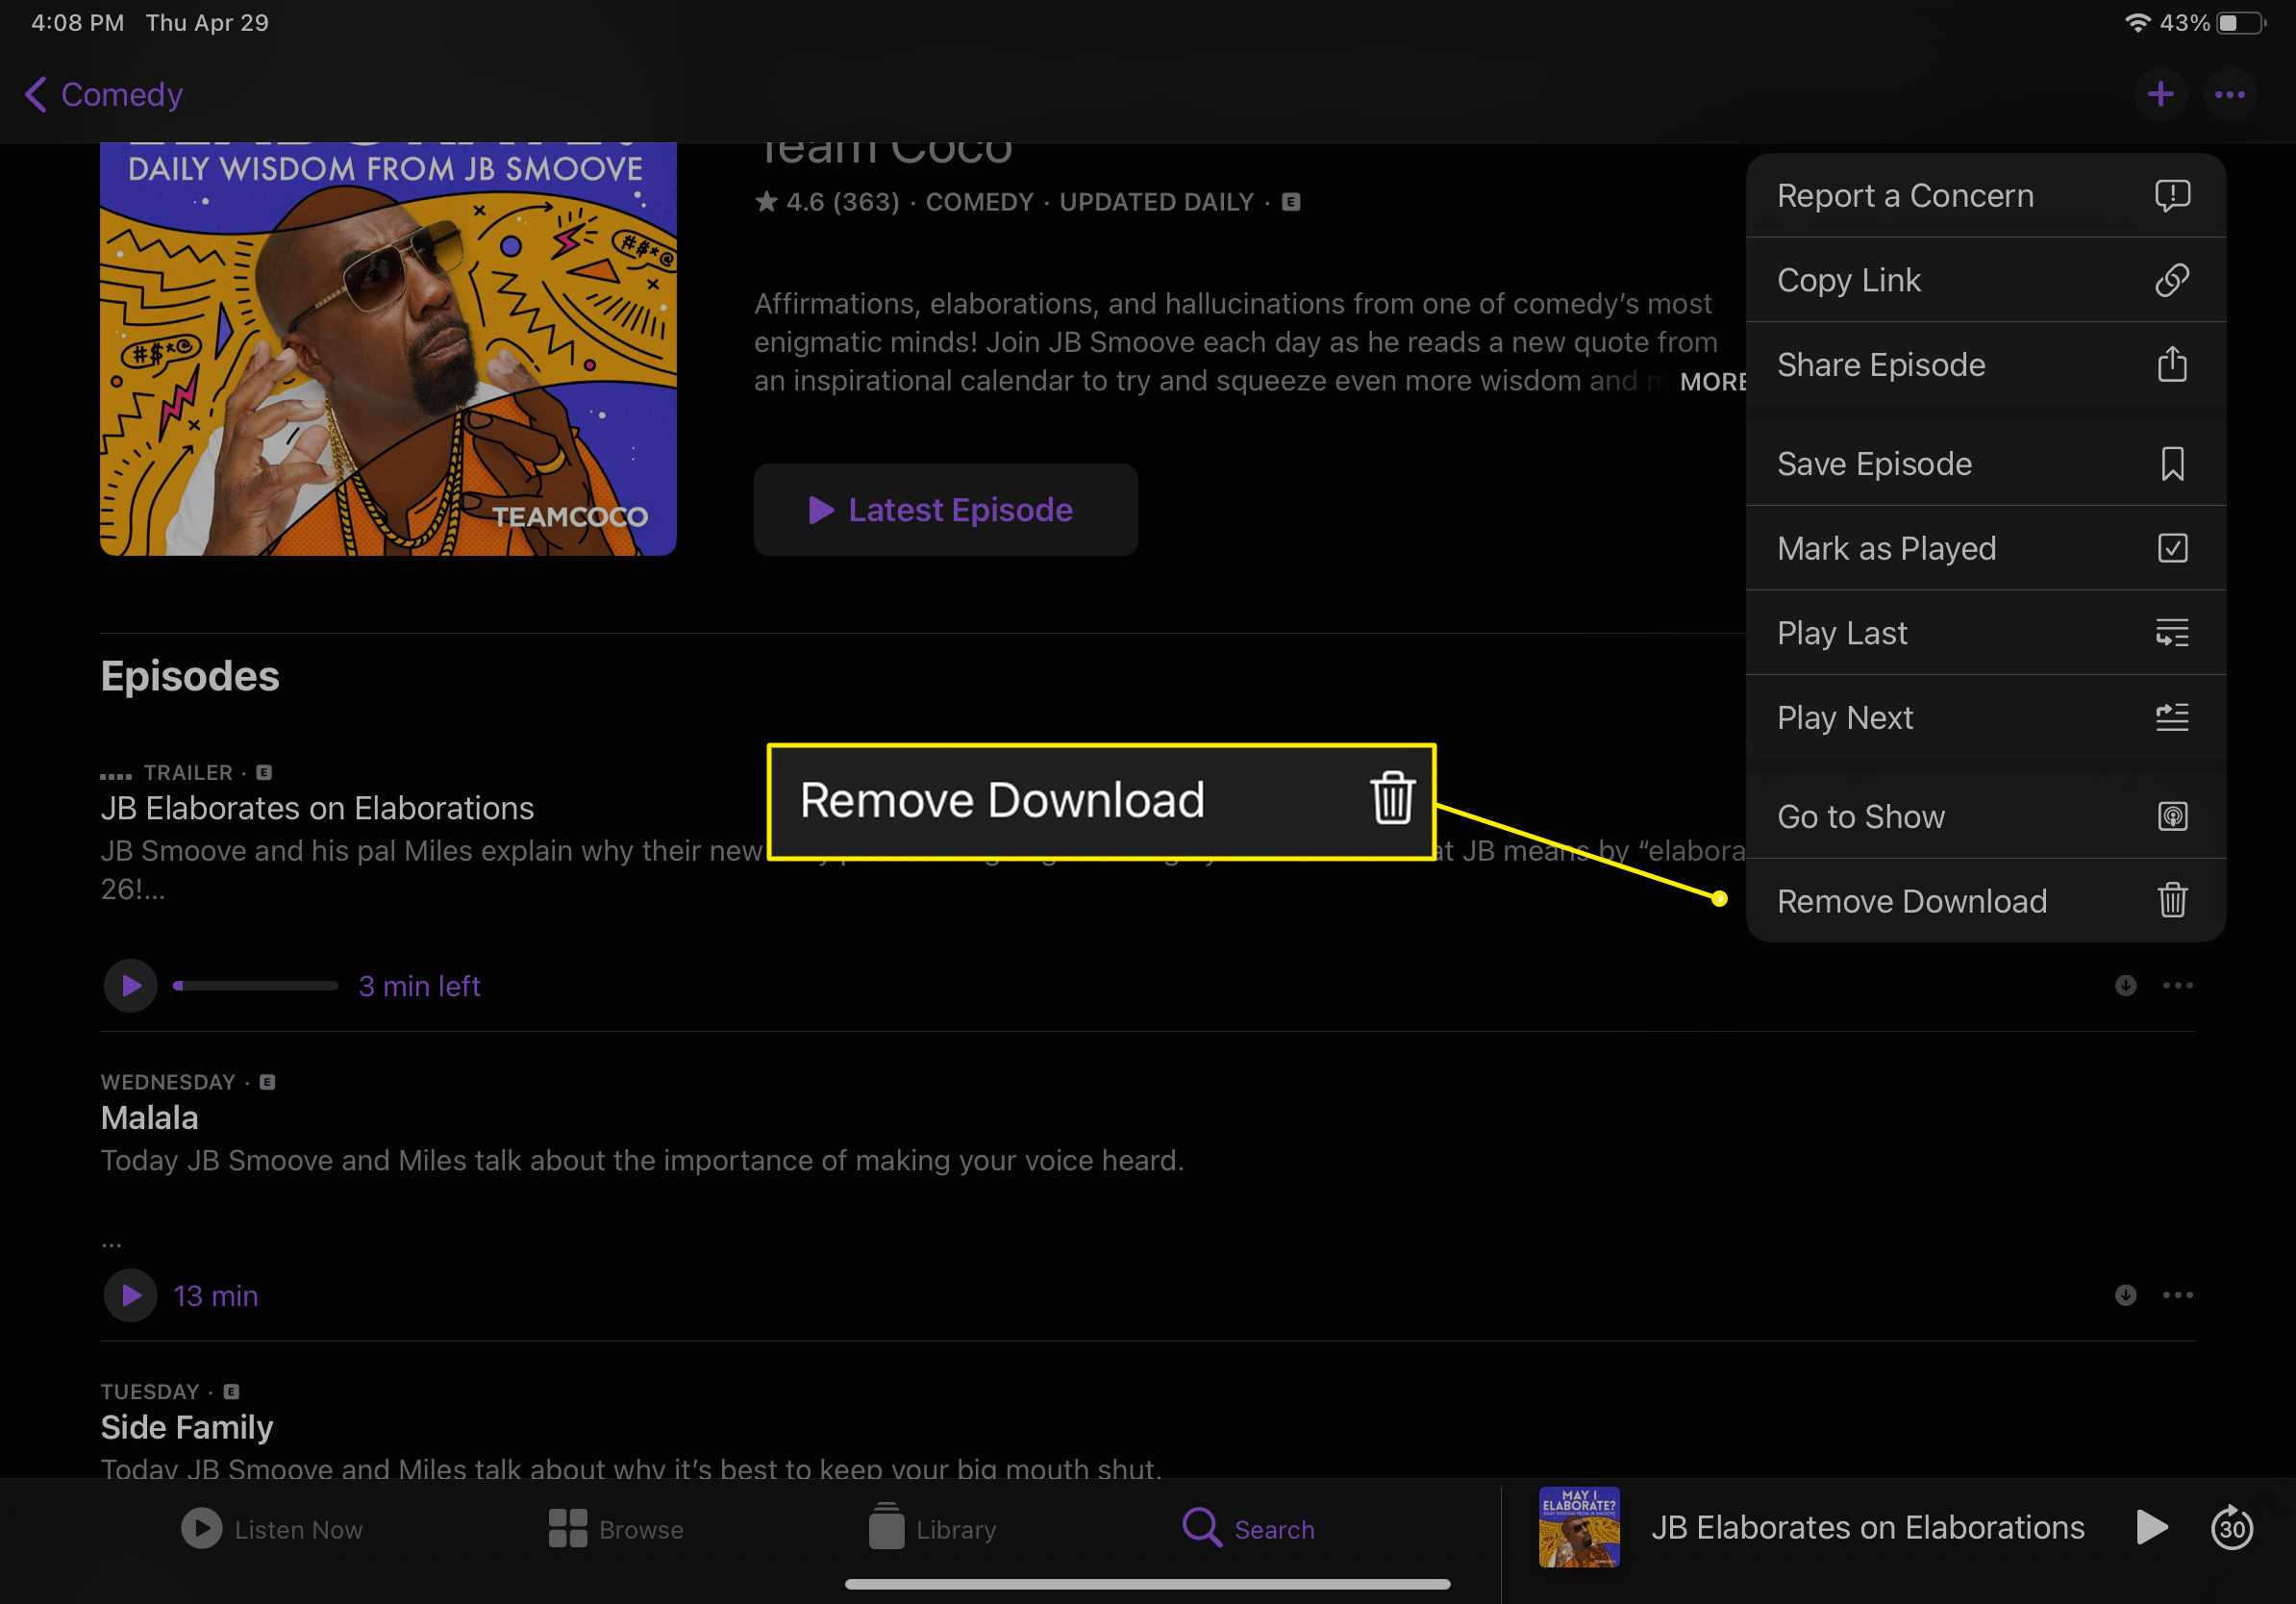 An Apple Podcasts episode with the 'Remove Download' option highlighted